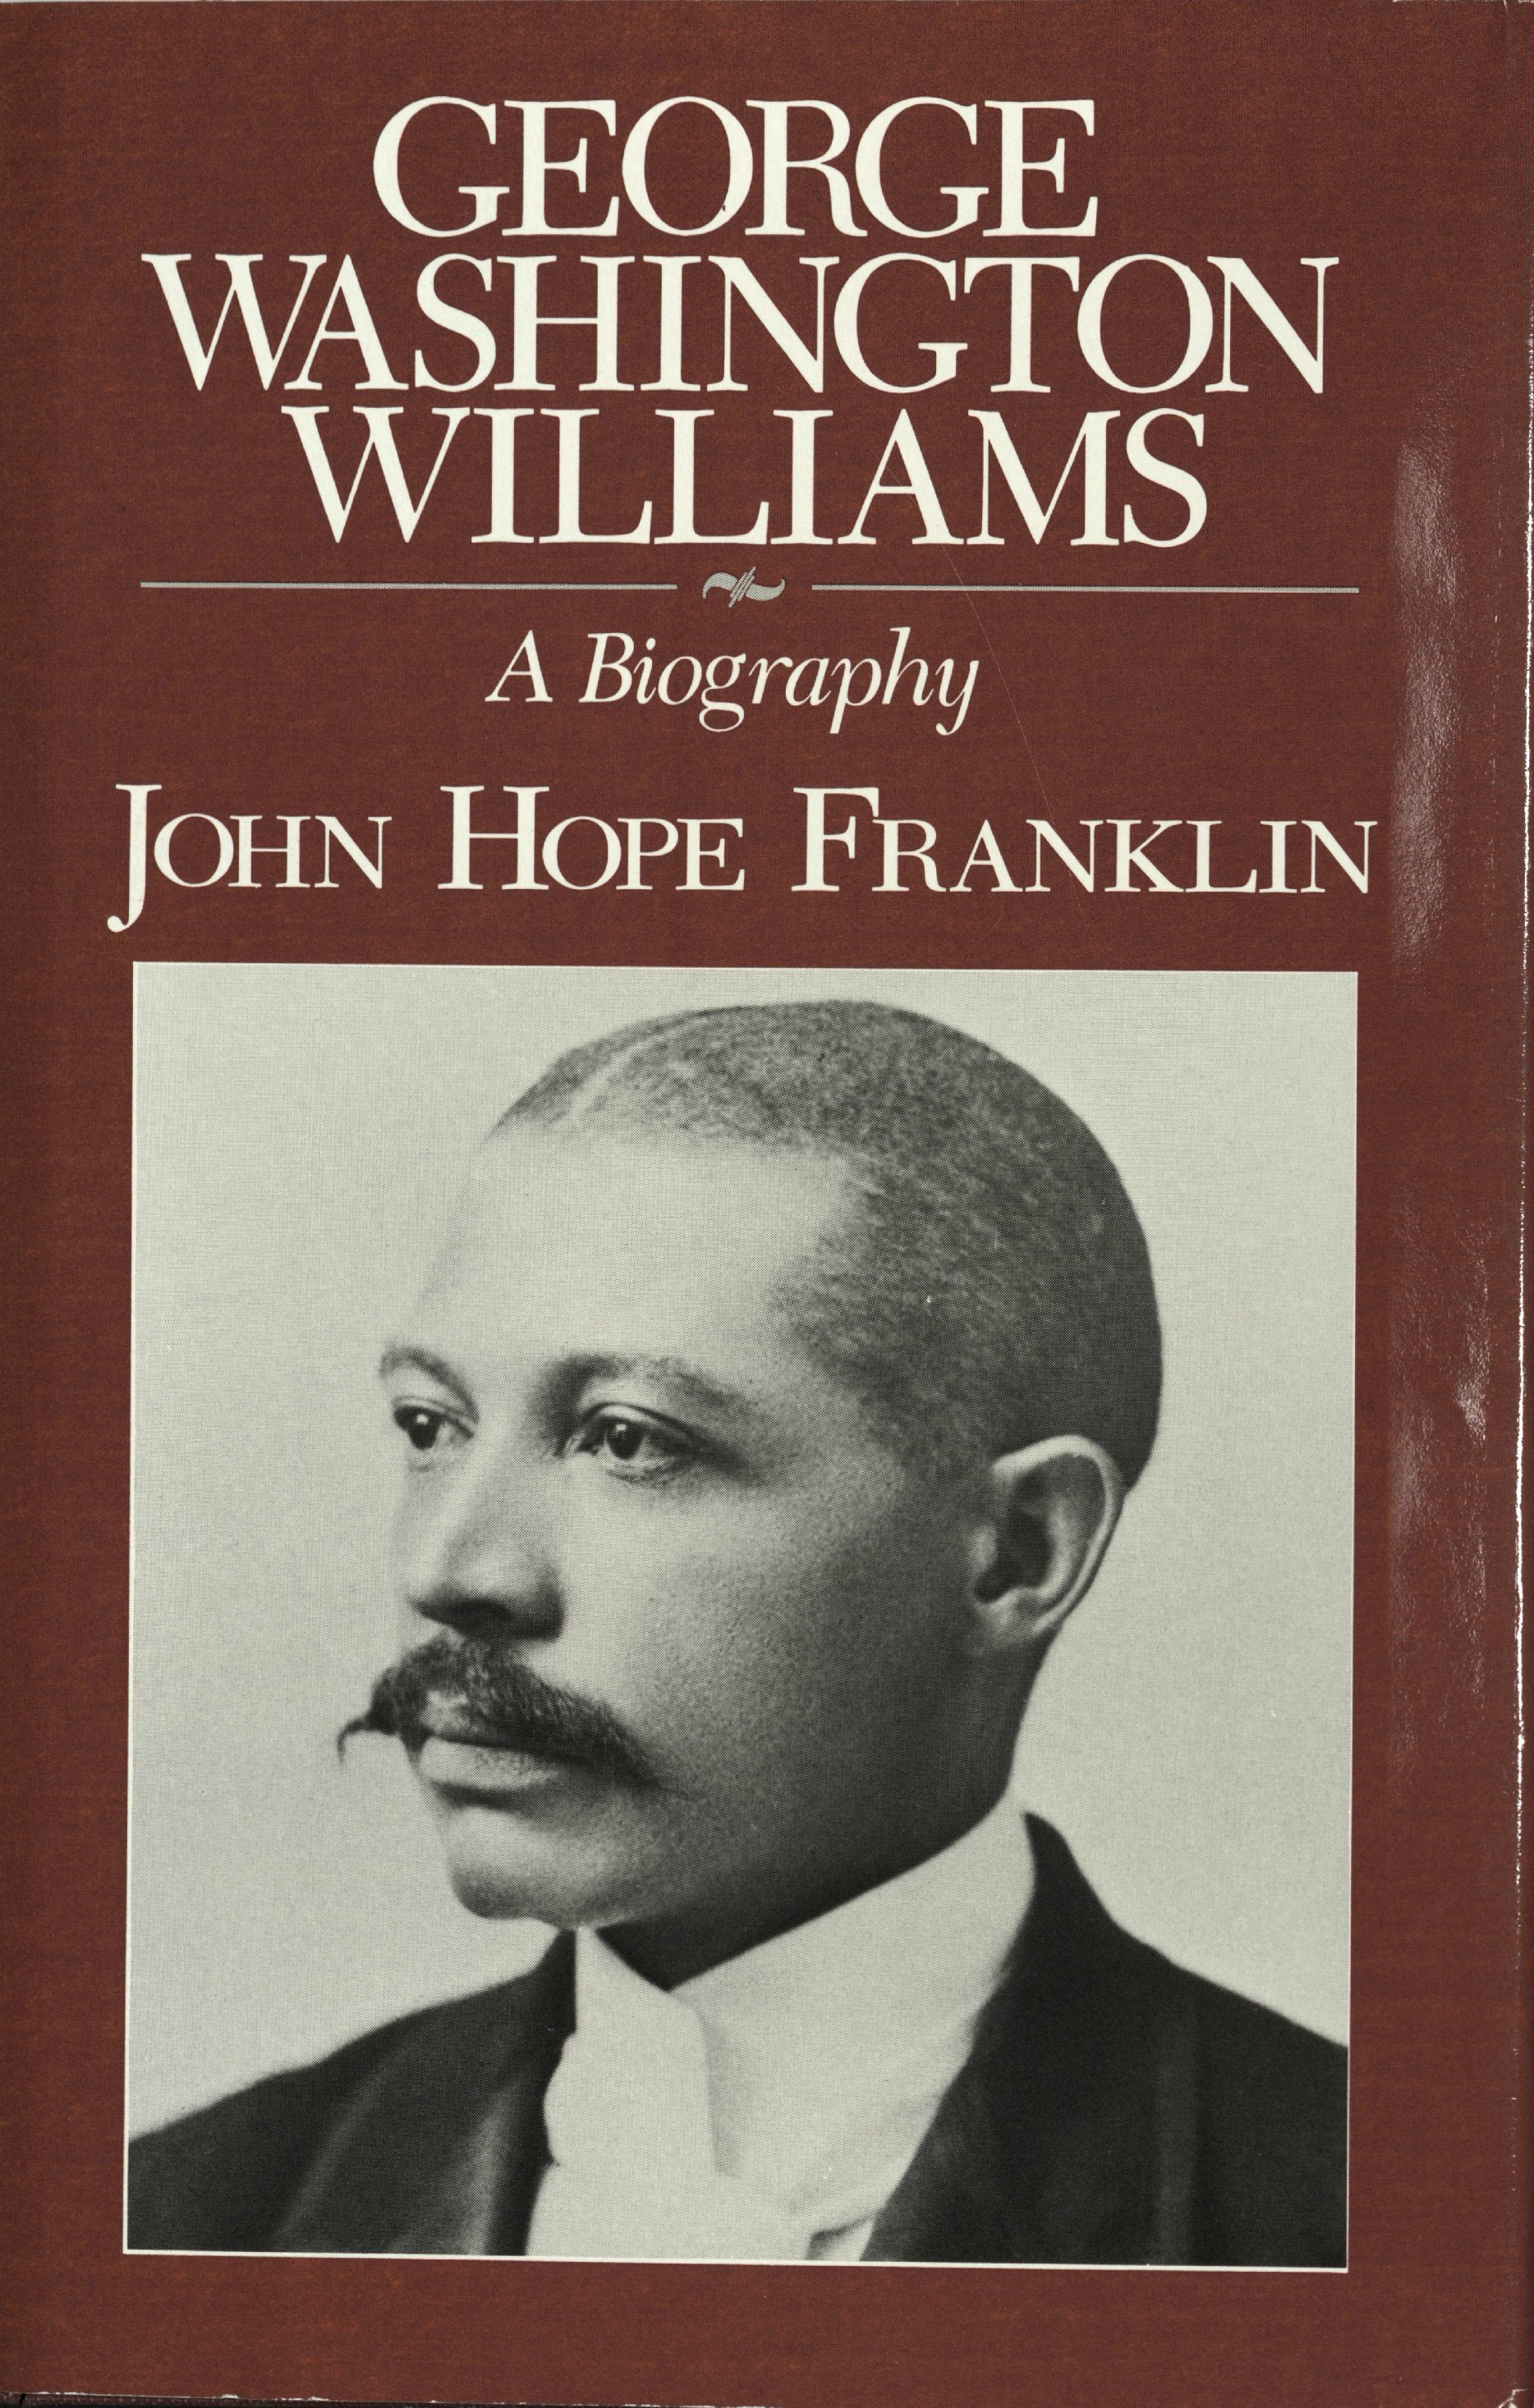 george washington achievements george washington williams a biography by john hope franklin duke university libraries